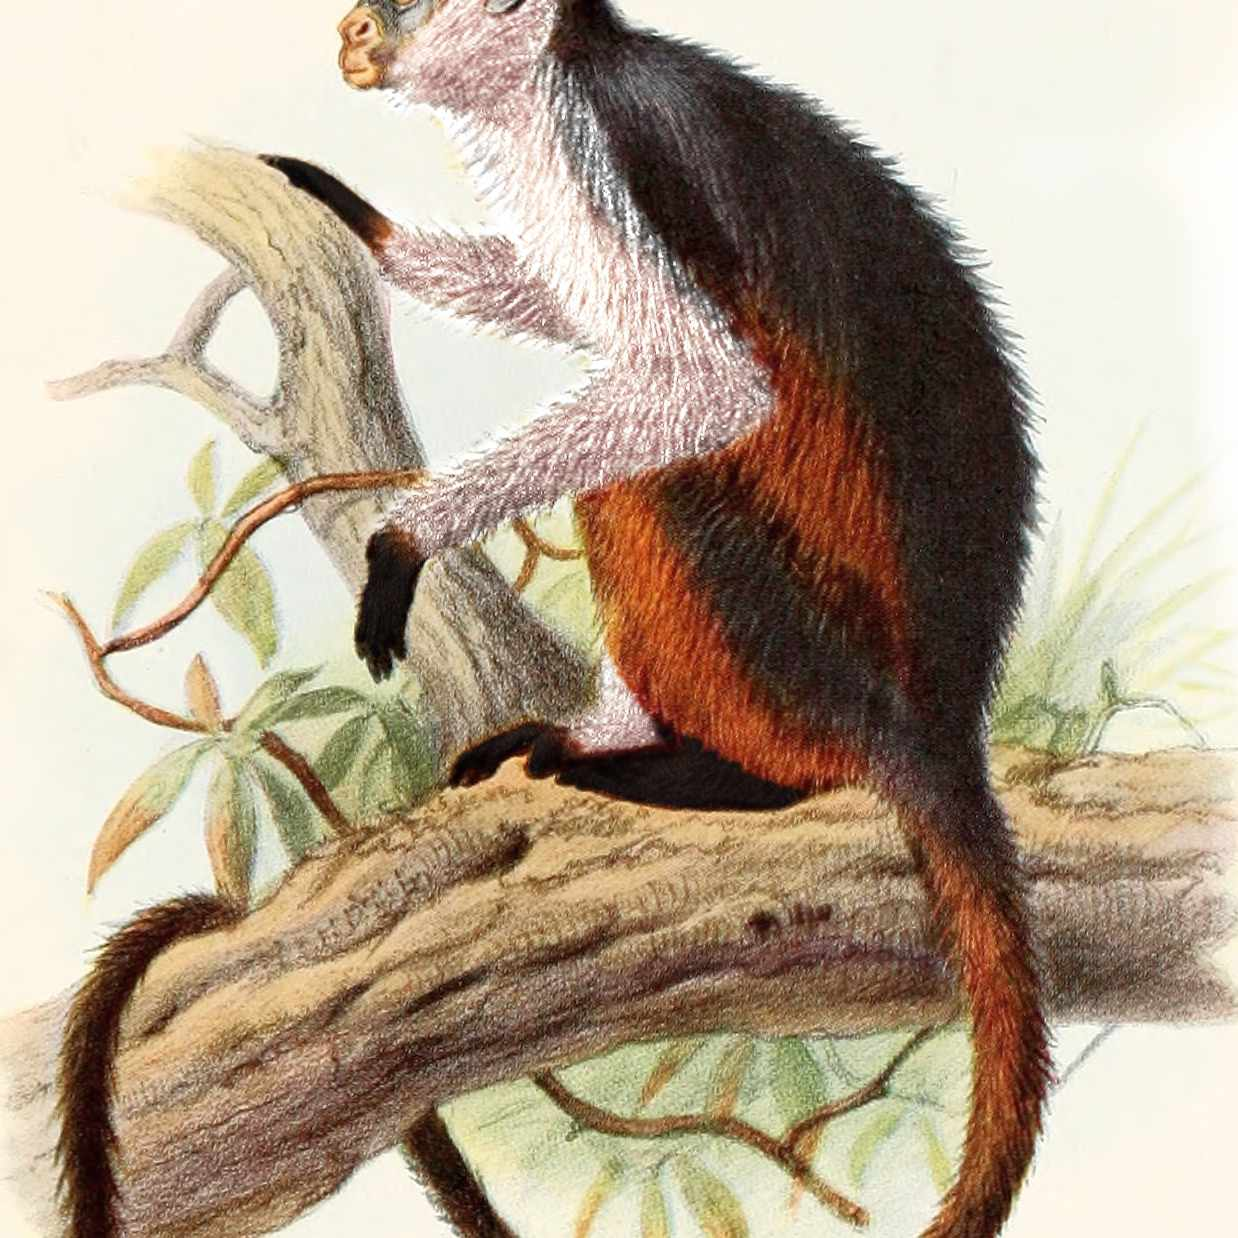 Illustration of the Niger Delta Red Colobus